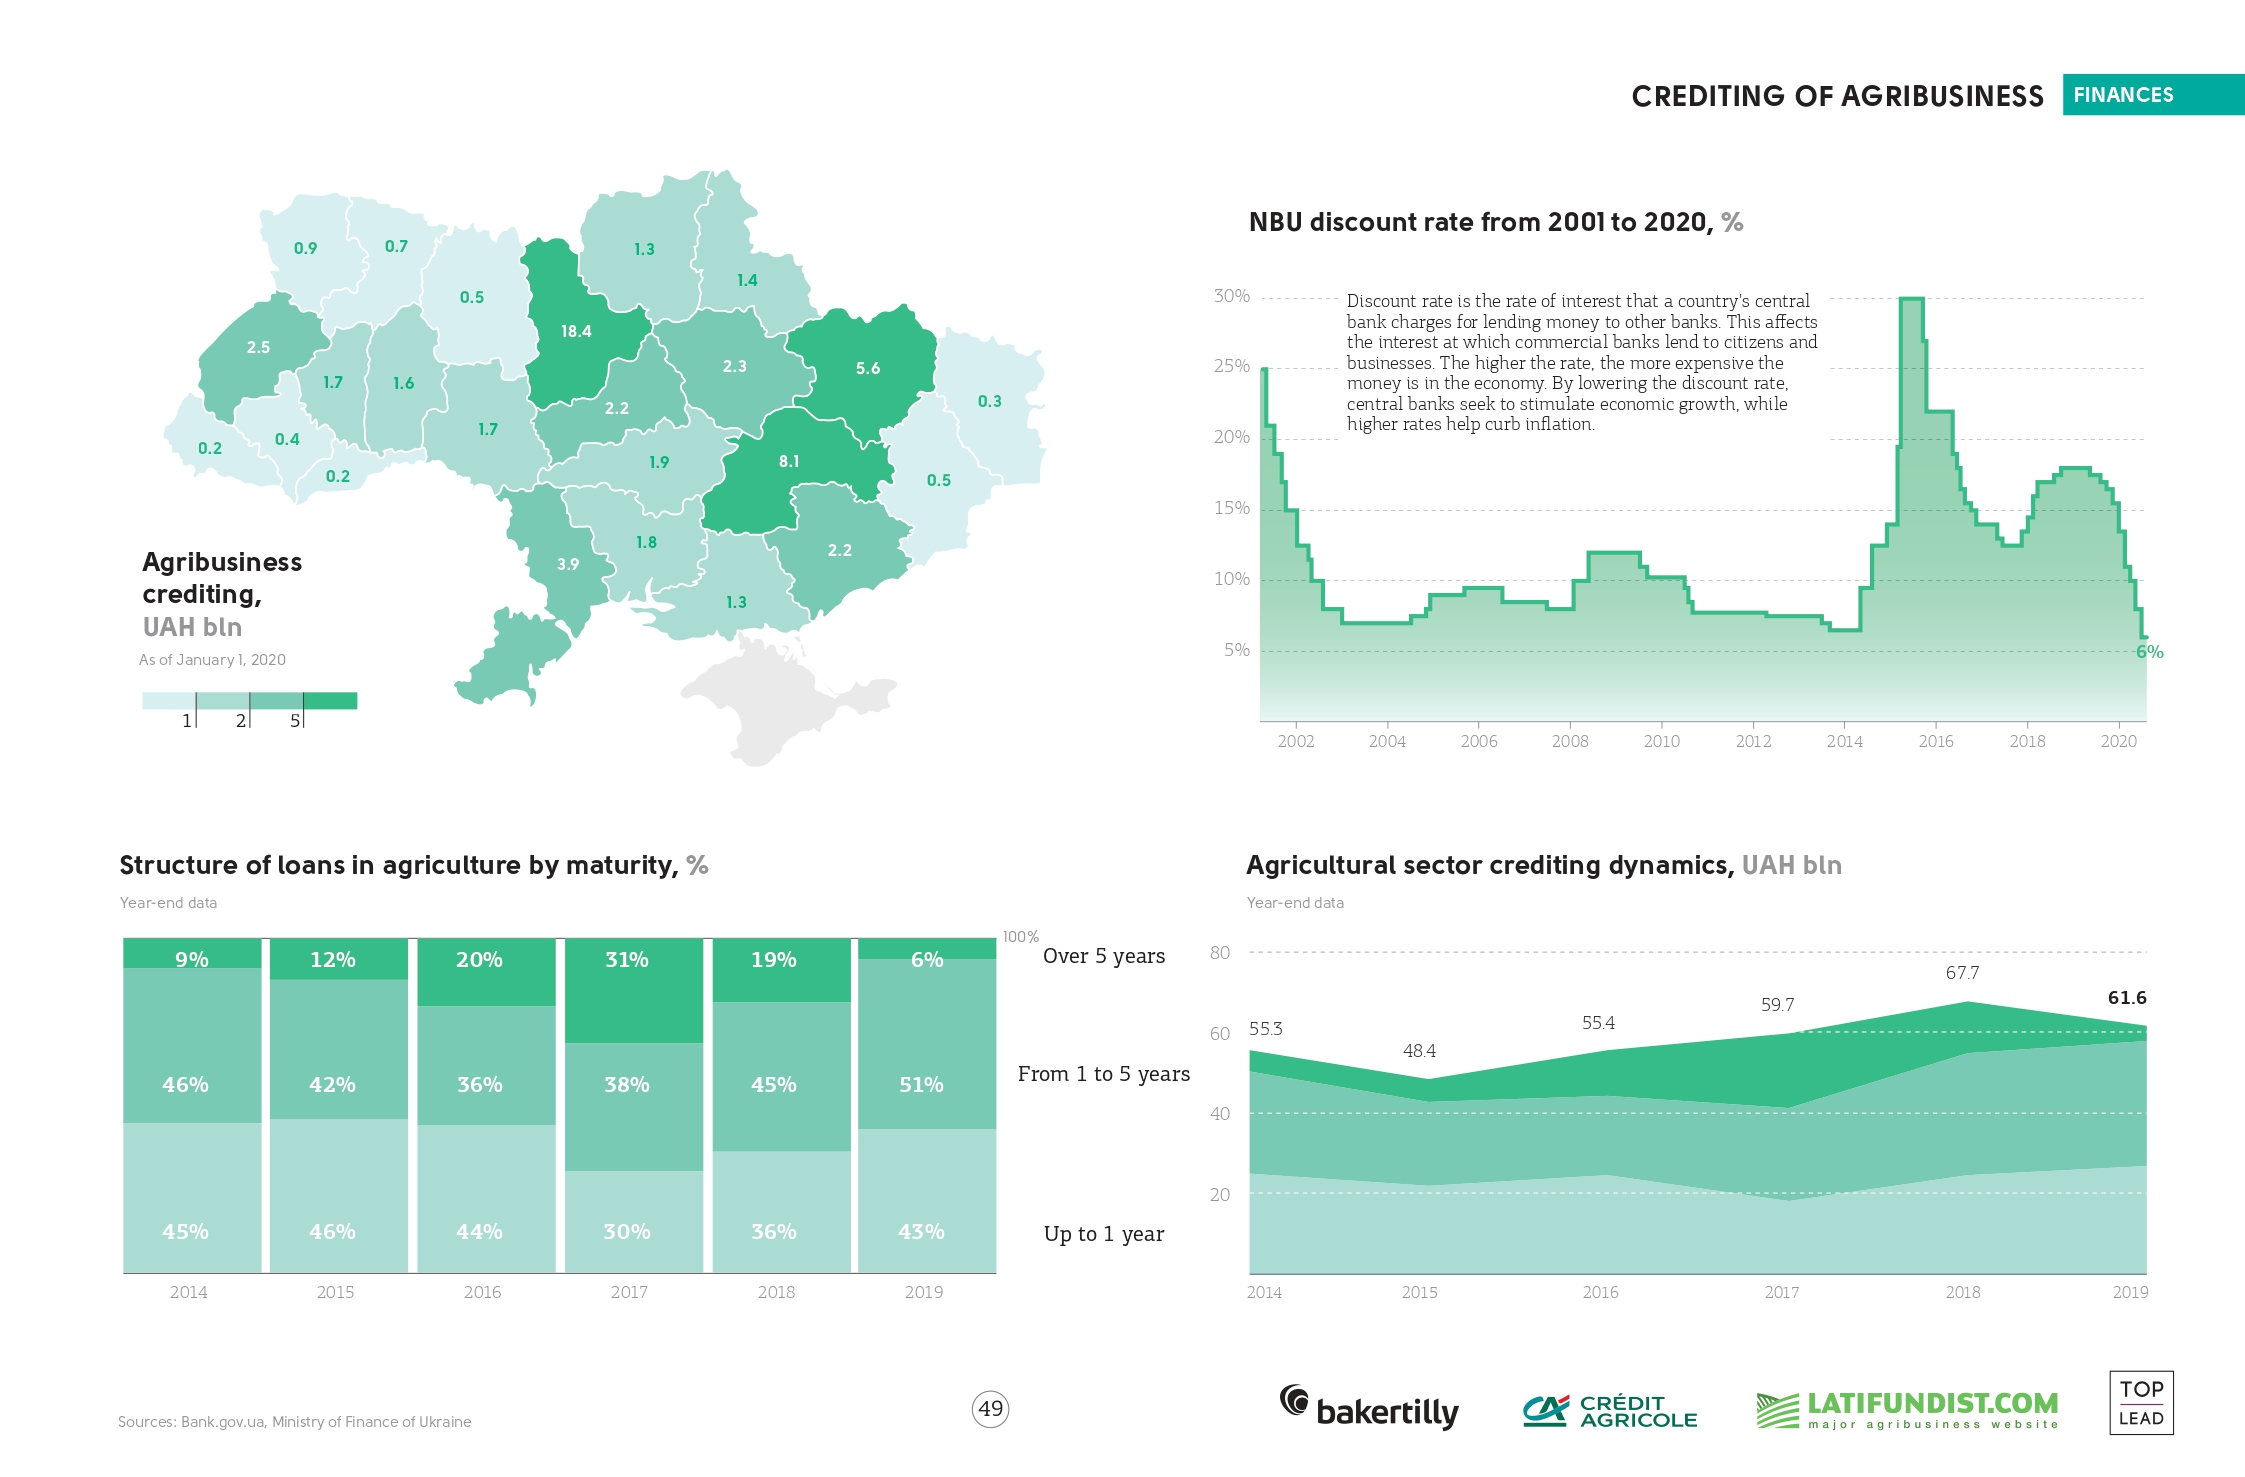 Crediting of agribusiness in Ukraine (click for full resolution)